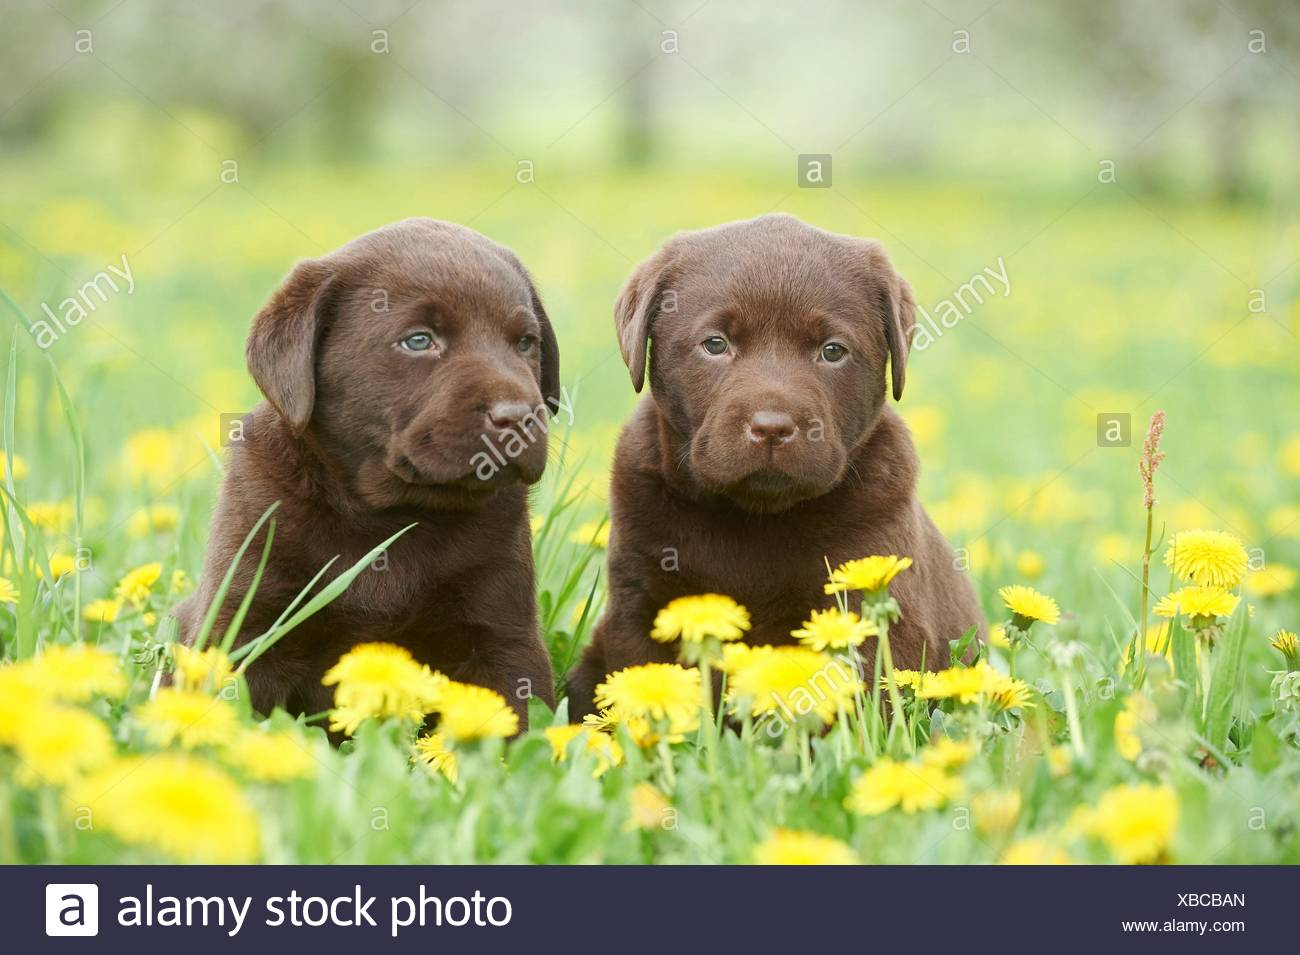 Labrador puppies, Upper Palatinate, Bavaria, Germany, Europe - Stock Image